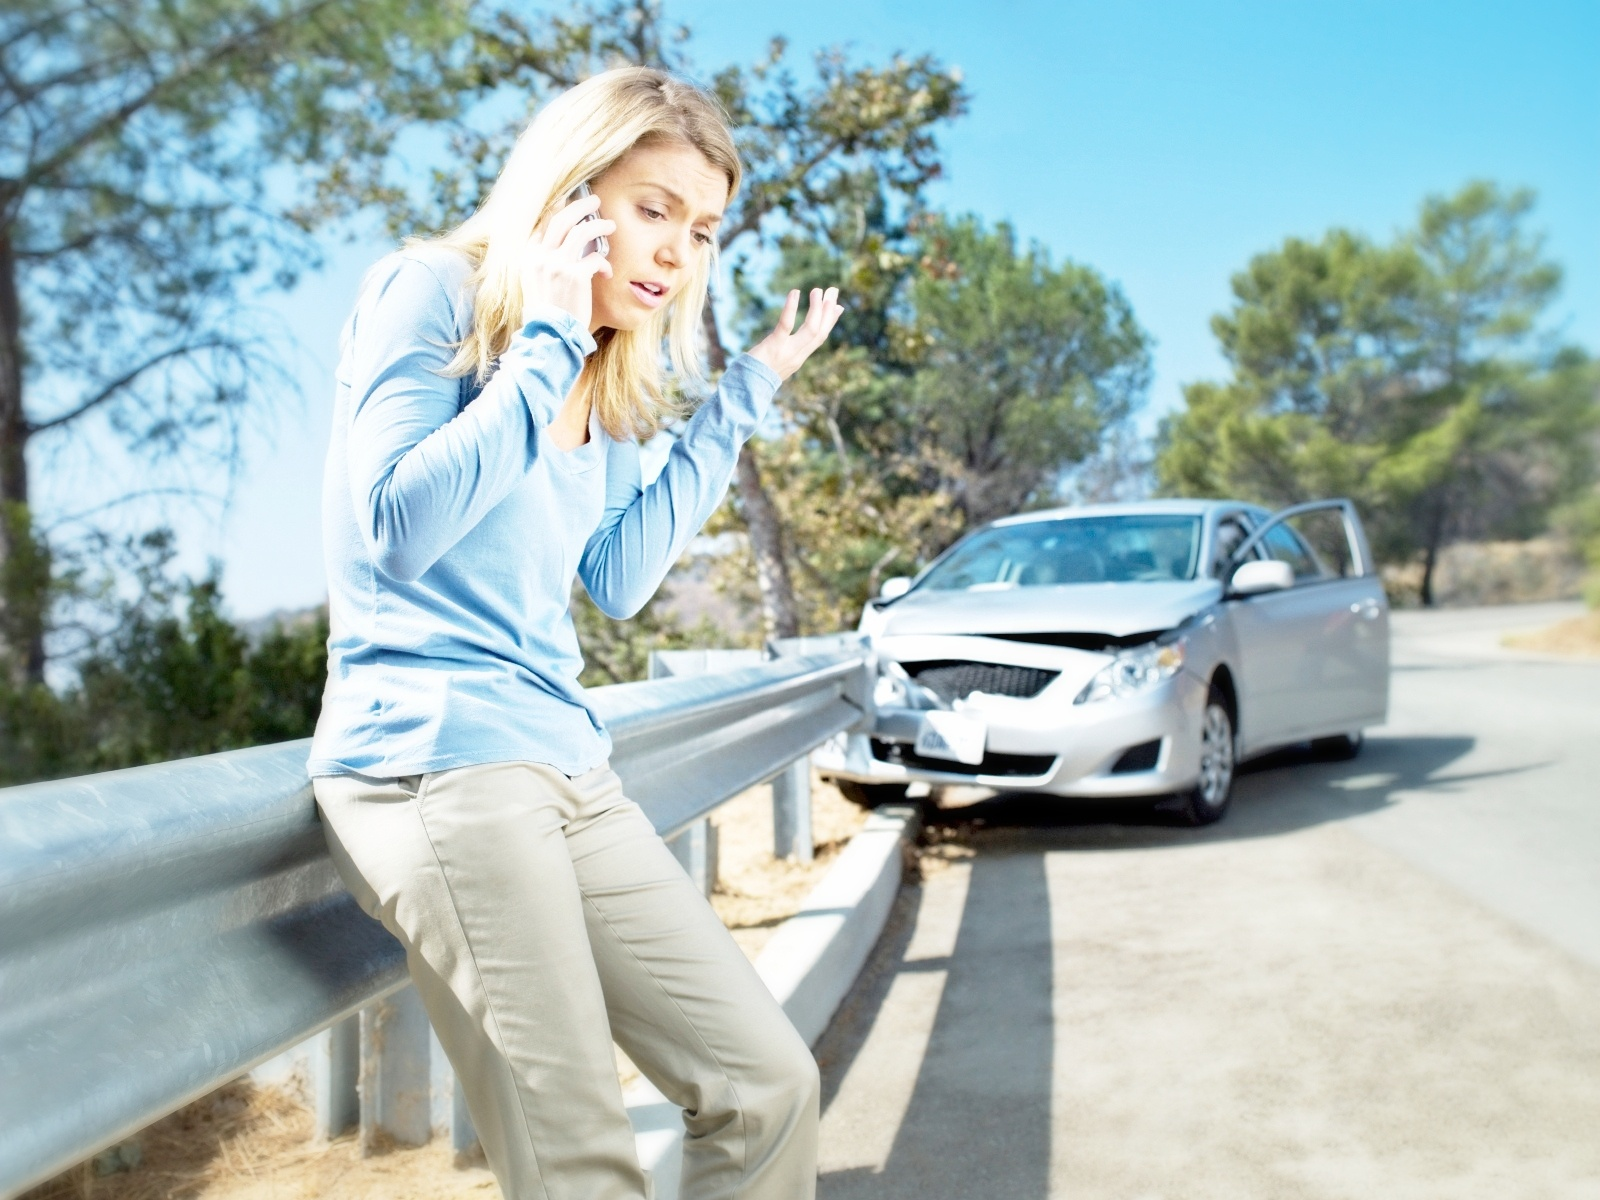 Car Accident Attorney Referral